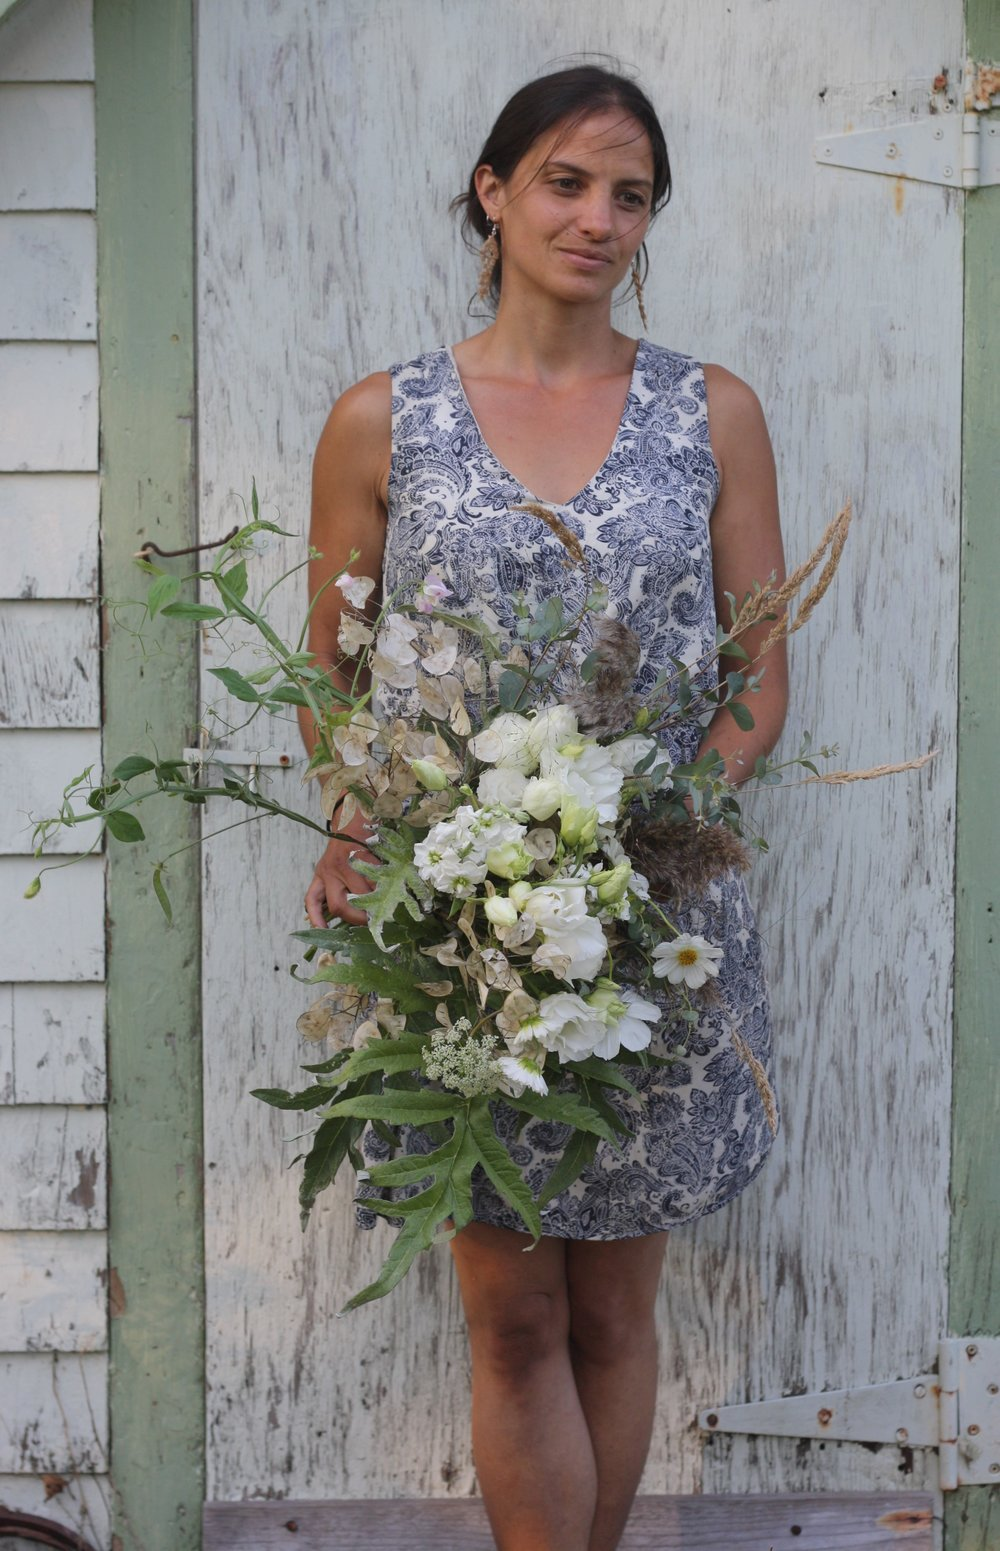 White wedding bouquet. Organically grown flowers in Nova Scotia. Hatfield Farm